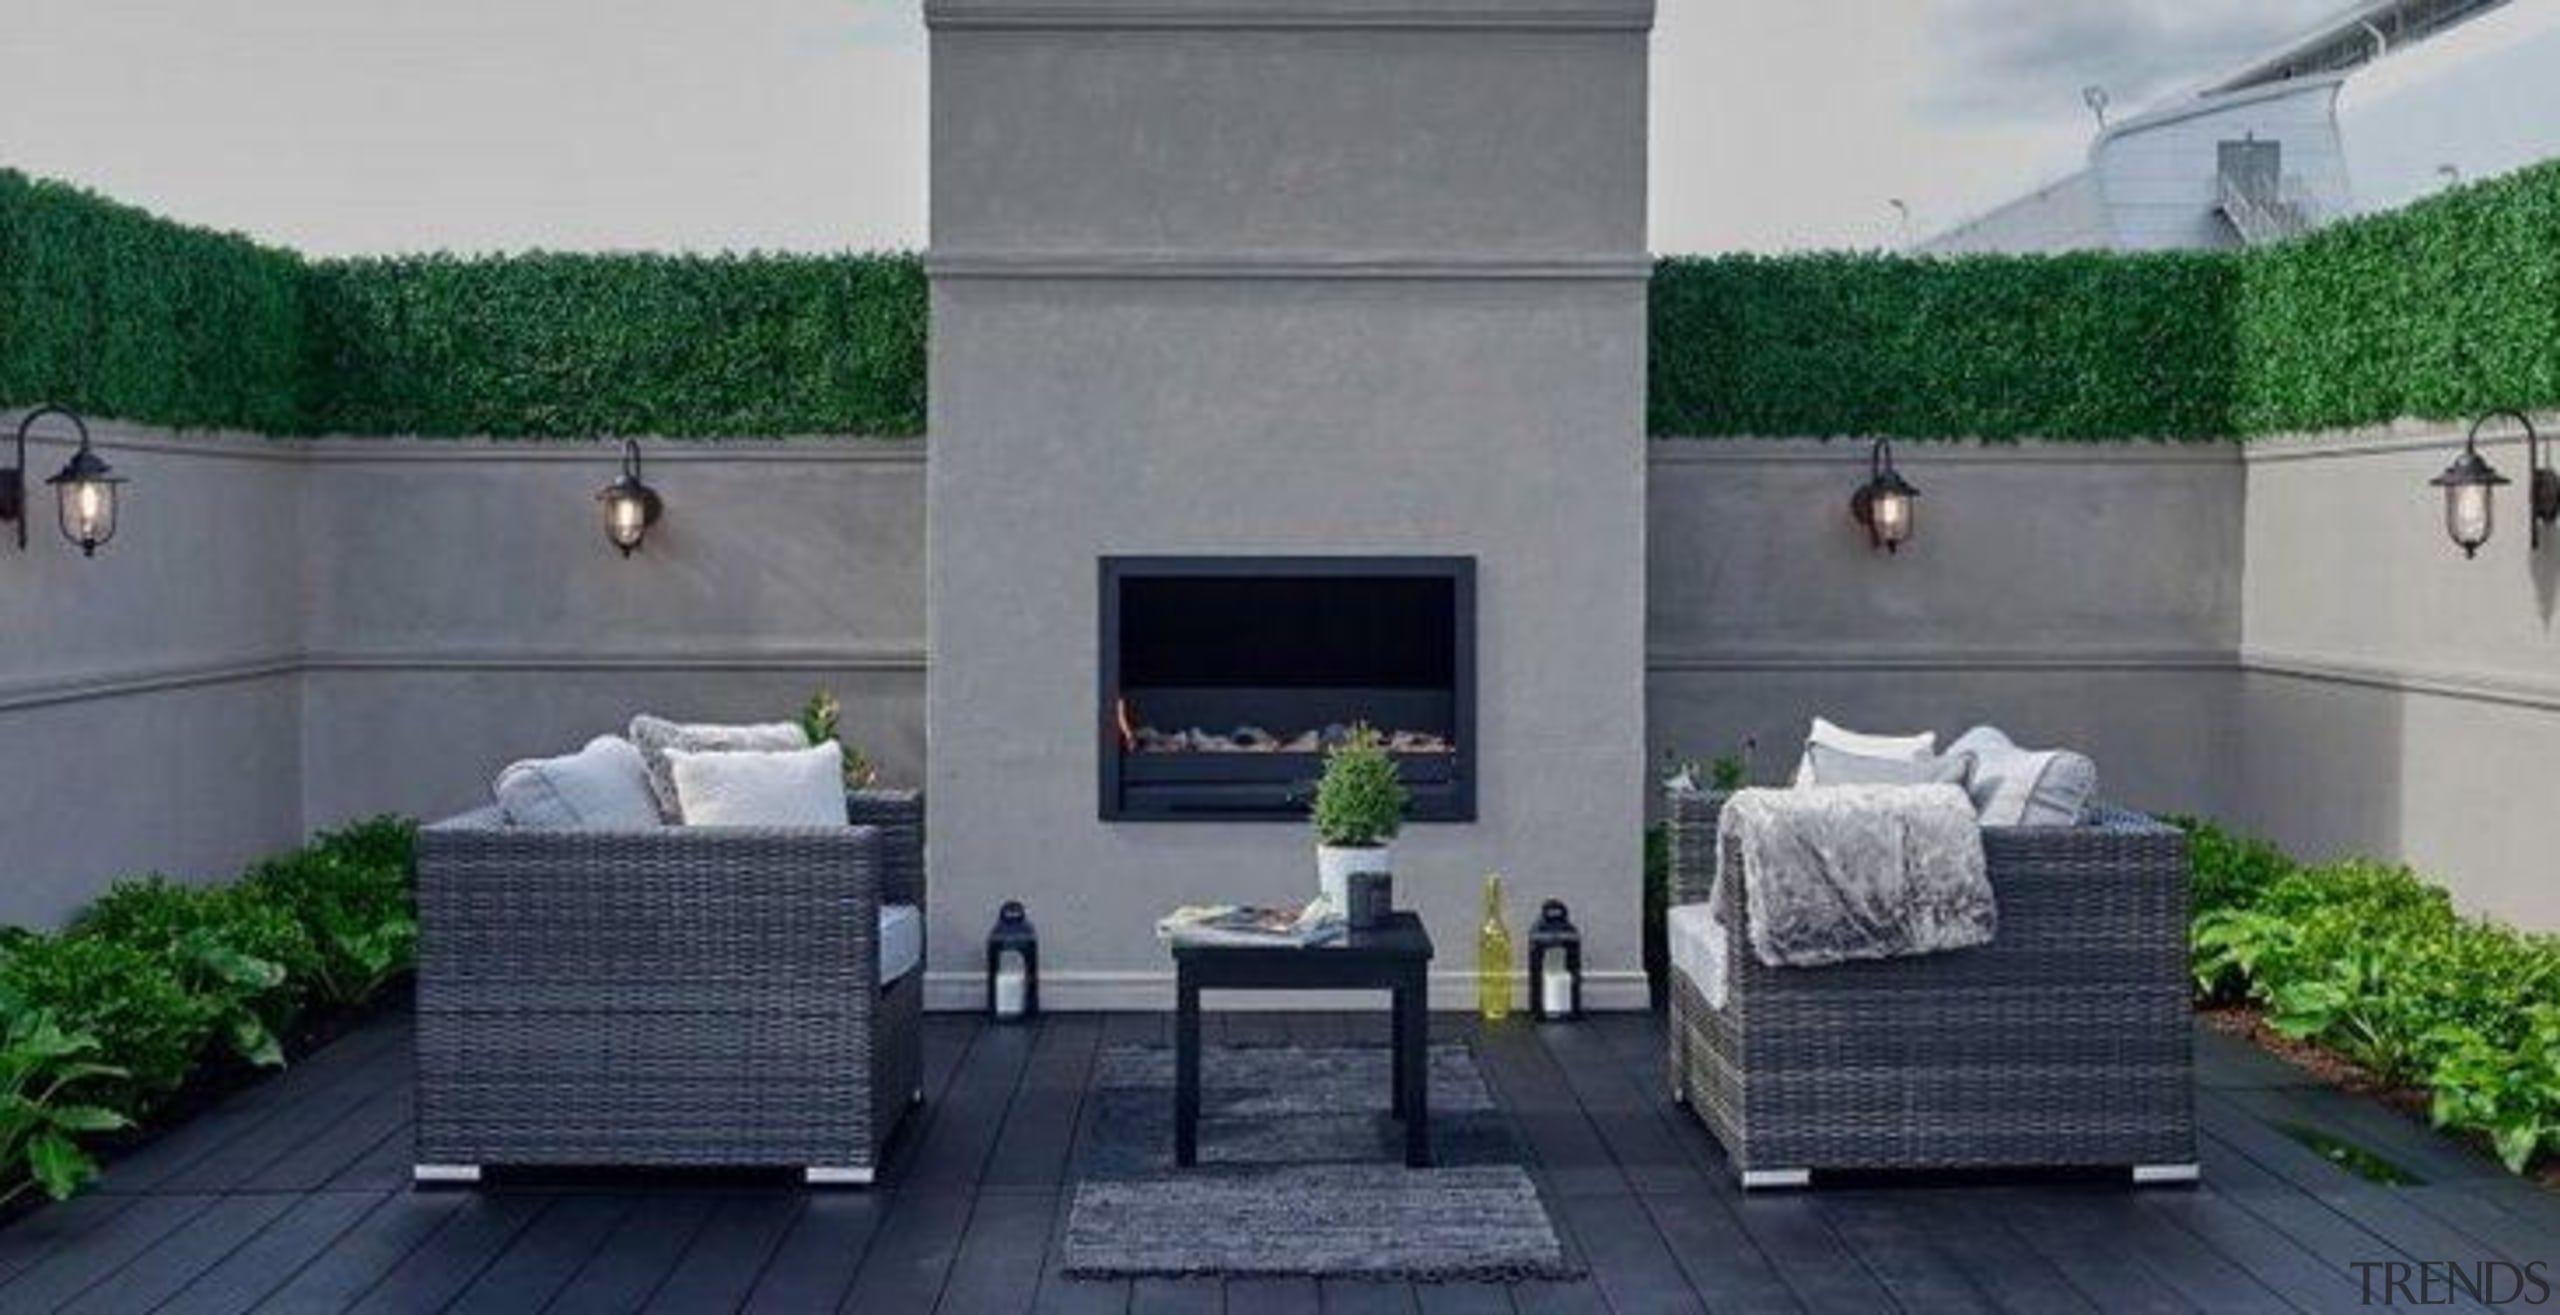 Your outdoor space should in all ways, look building, coffee table, floor, furniture, home, house, interior design, living room, property, room, table, wall, wicker, gray